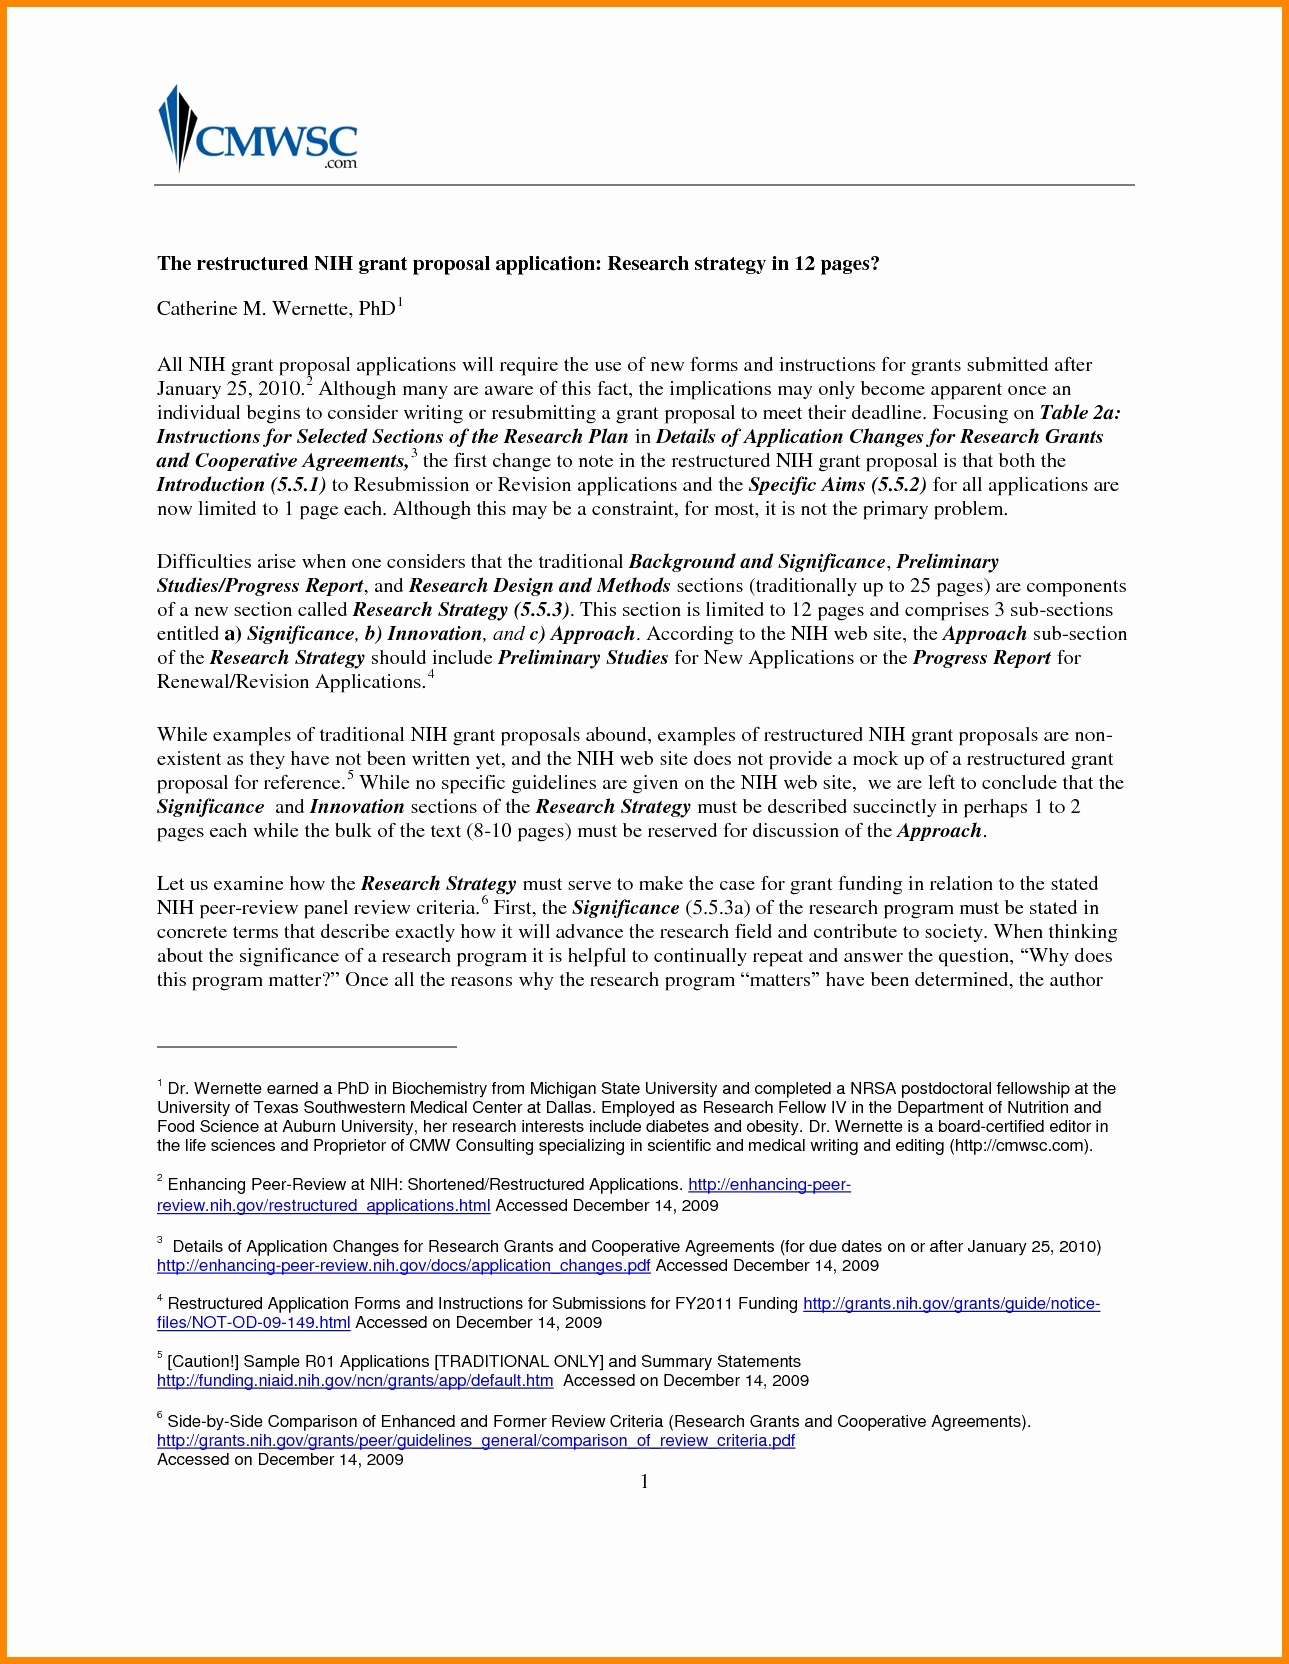 Mission Letter Template - Mission Statement Examples for Cleaning Pany and Cover Letter